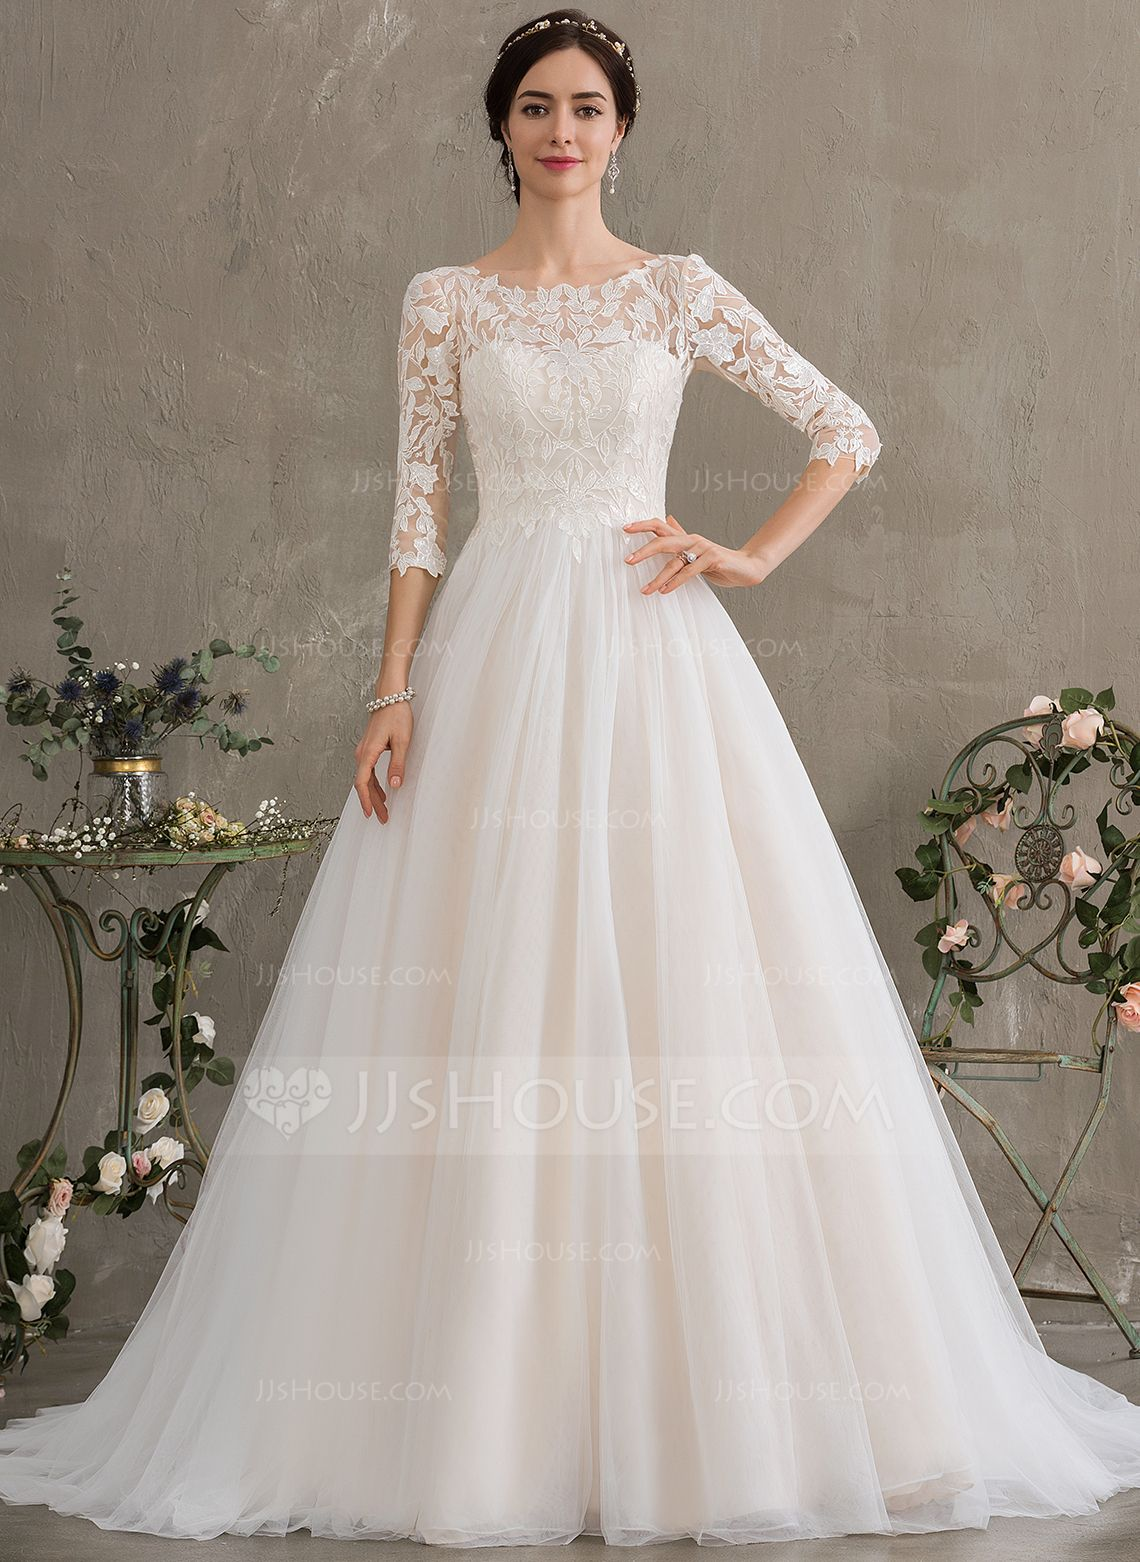 Us 214 00 Ball Gown Princess Scoop Neck Court Train Tulle Wedding Dress With Sequins Jj S House Bow Wedding Dress Wedding Dress Sleeves Wedding Dress Long Sleeve [ 1562 x 1140 Pixel ]